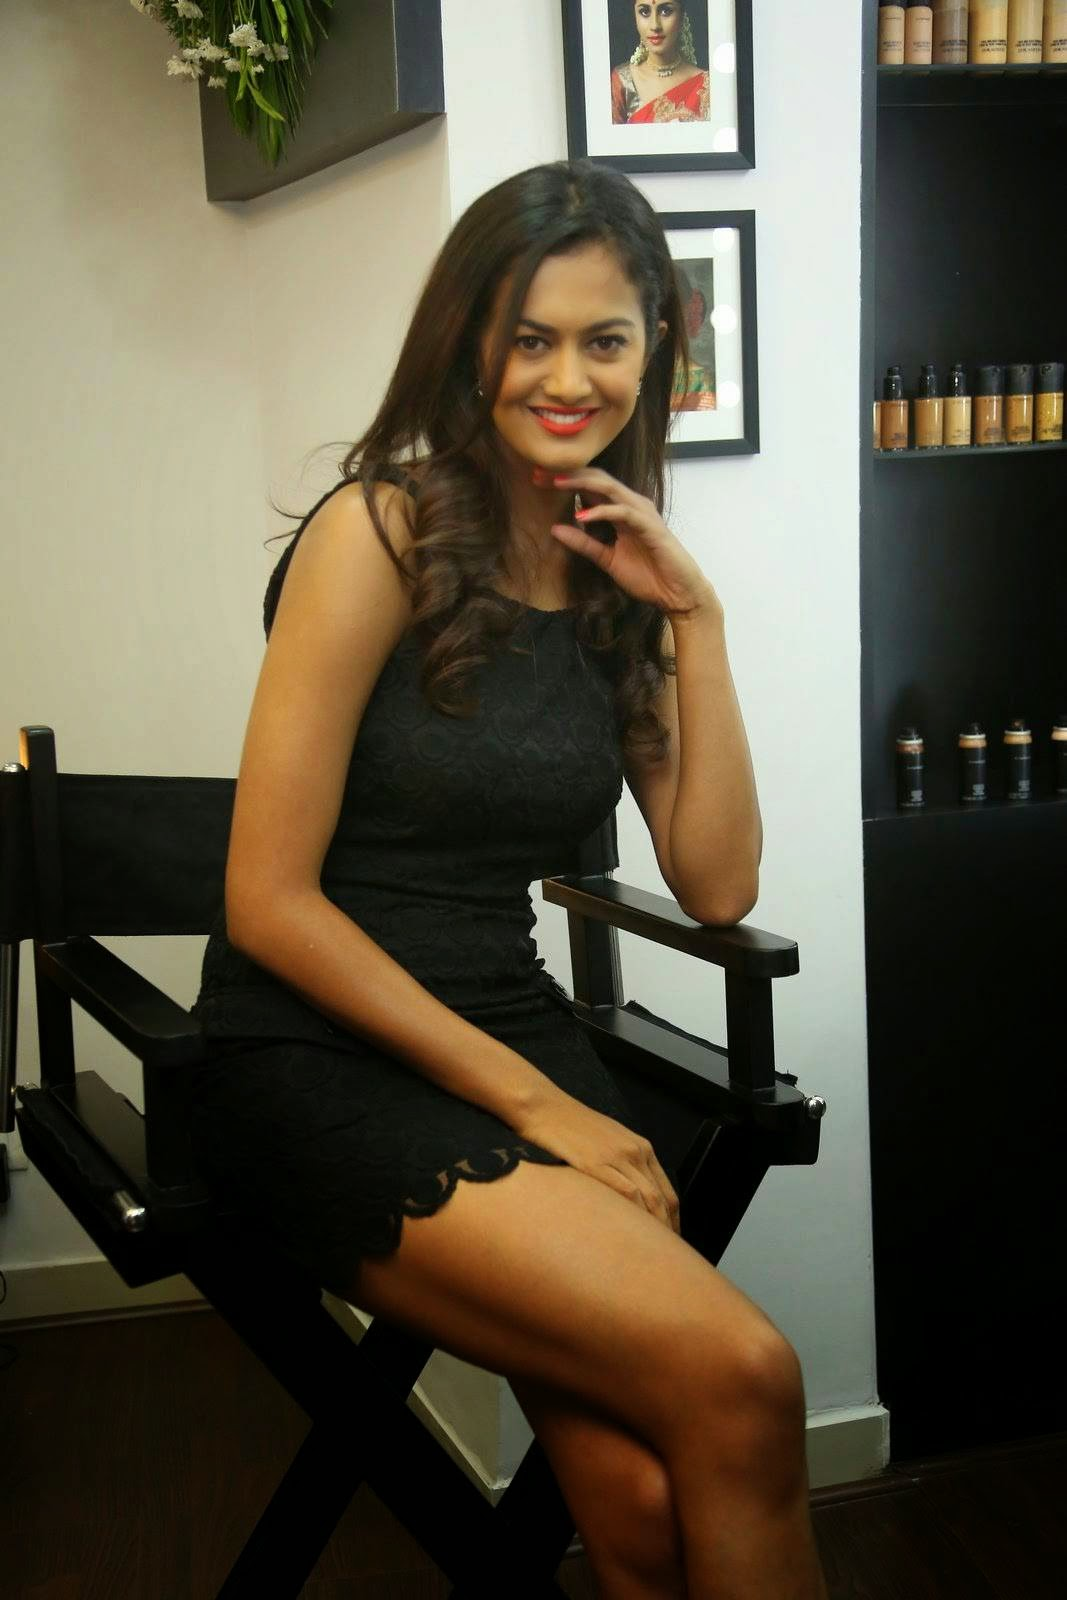 Telugu Actress Shubra Aiyappa, Shubra Aiyappa Hot Legs & thighs images in Short black Dress